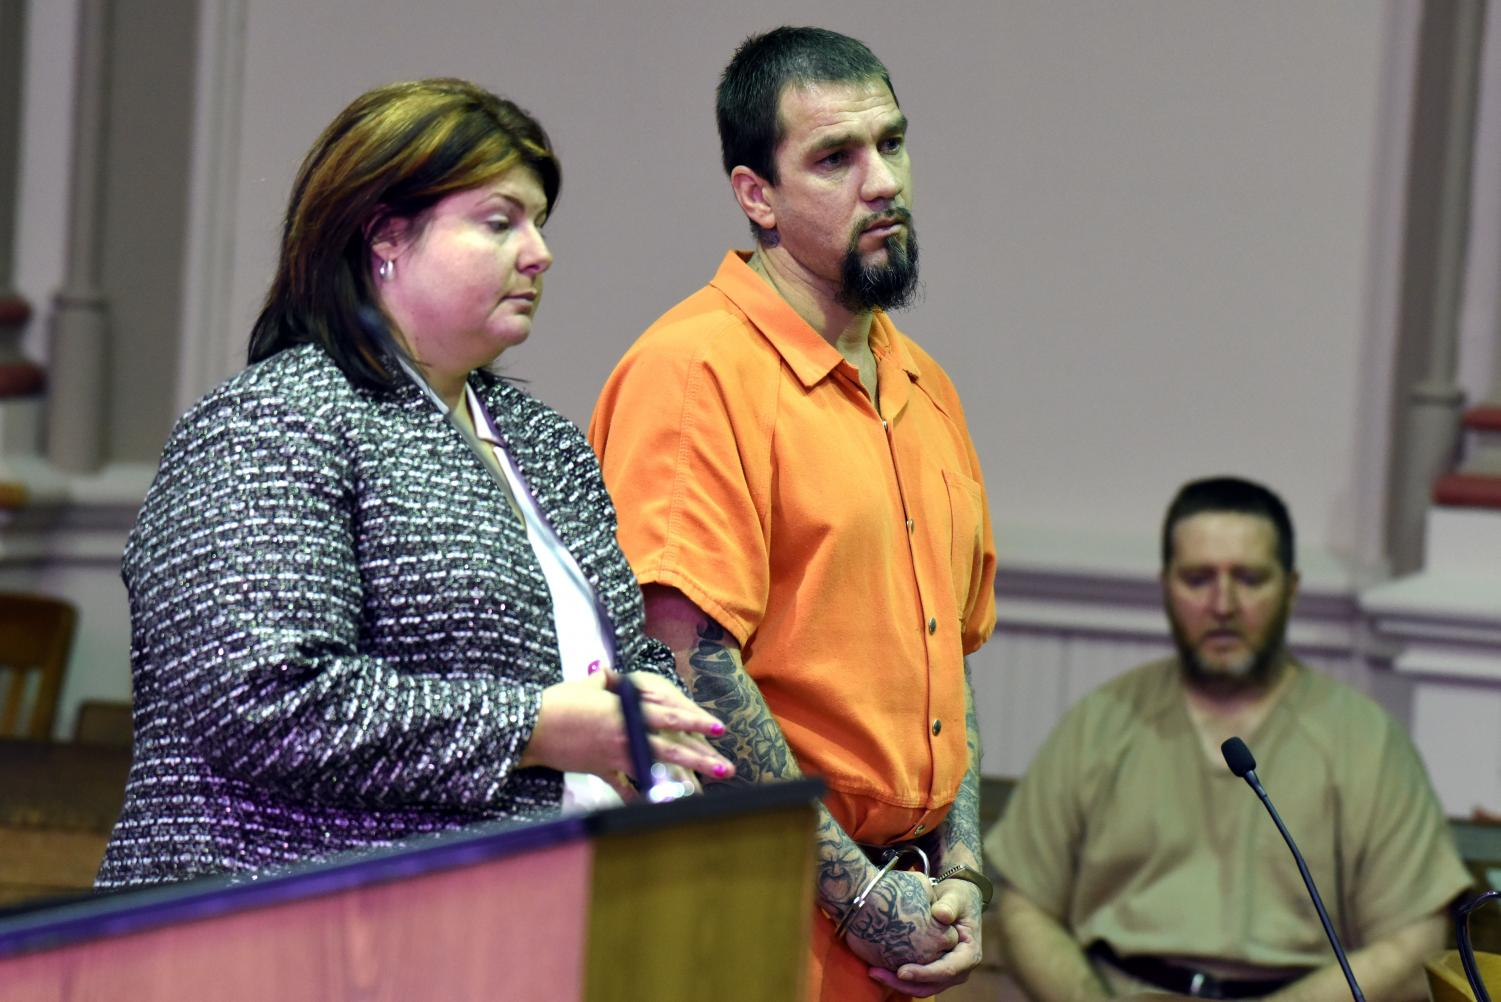 Timothy Huey (right) stands before Judge Kelly Cottrill, with his defense attorney Kendra Kinney (left), during his sentencing hearing Friday morning.